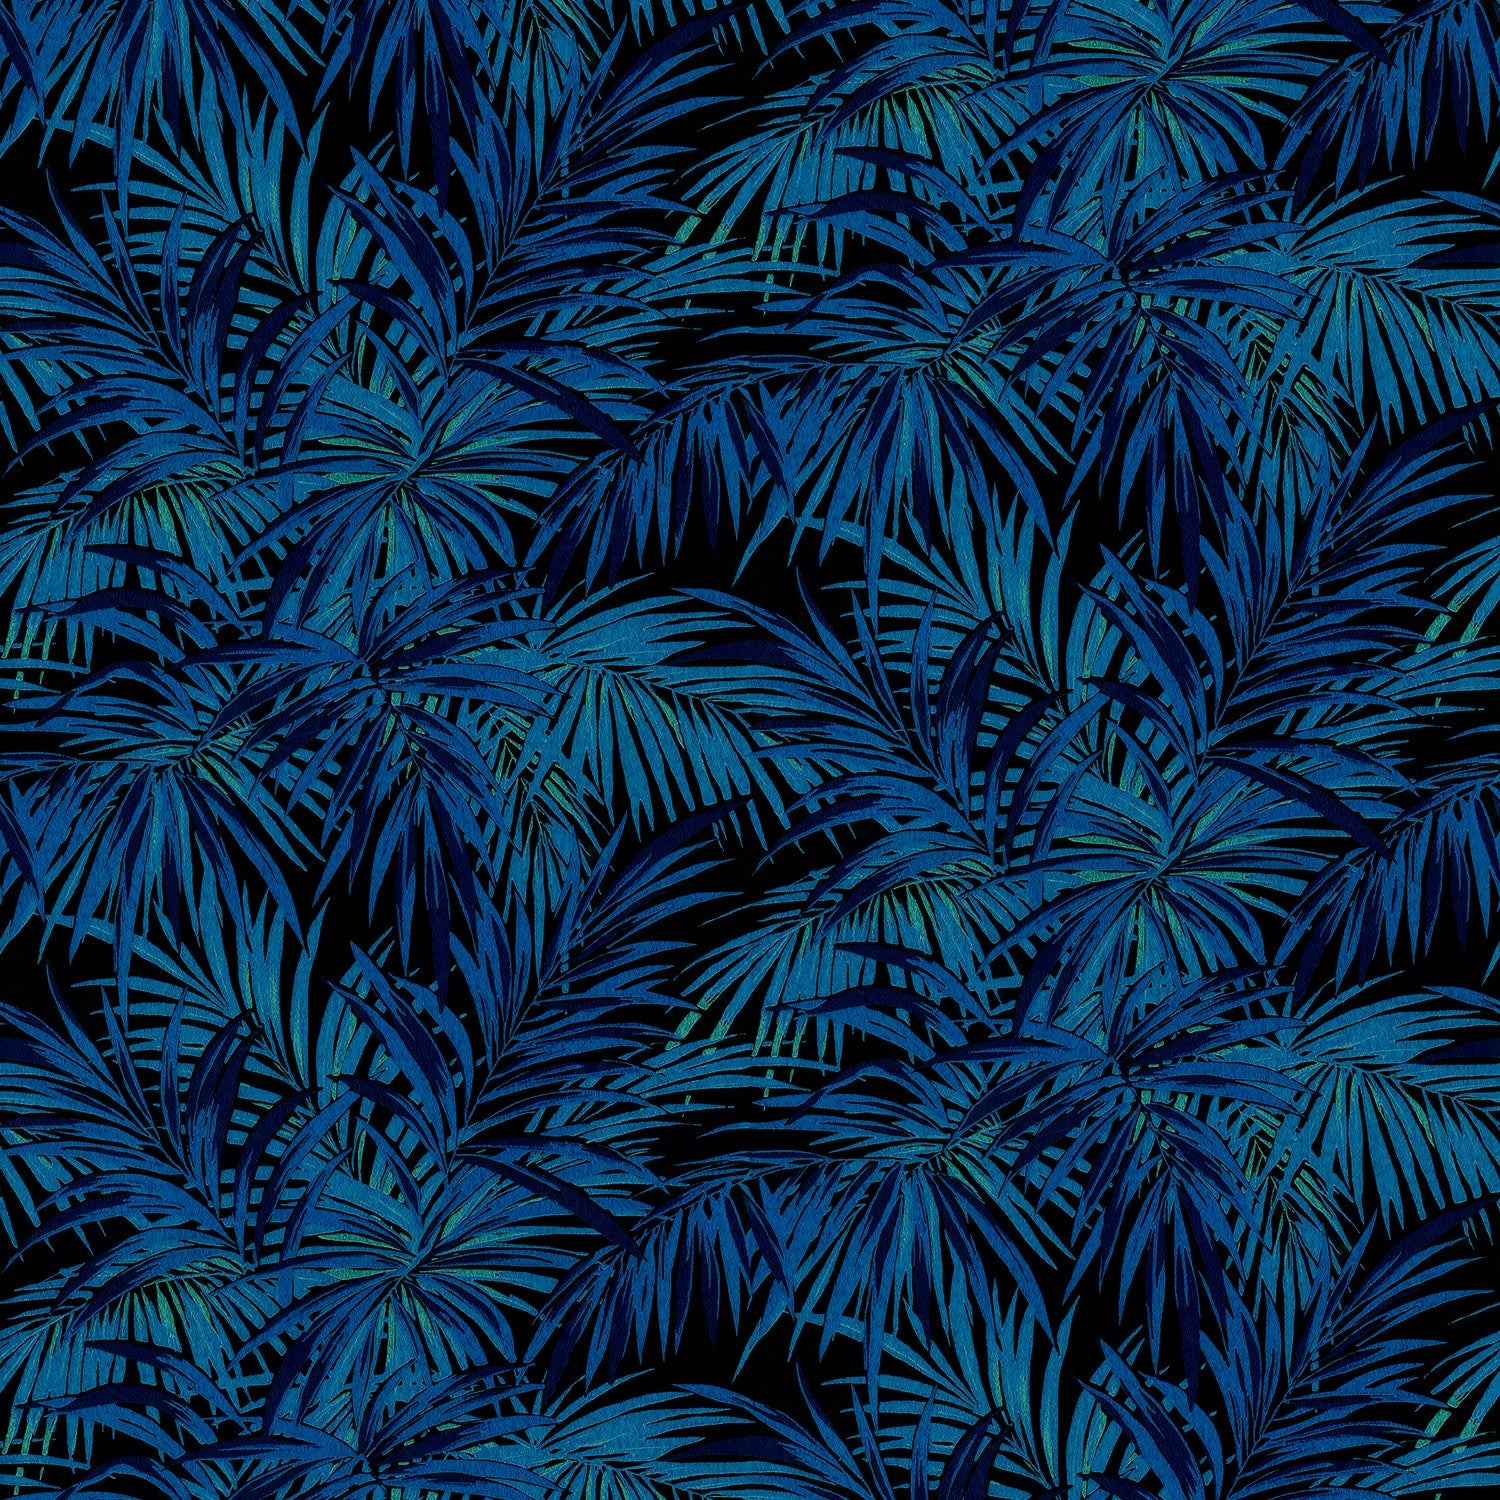 Fabric swatch of a electric blue and black palm print design stain resistant velvet fabric for curtains or upholstery